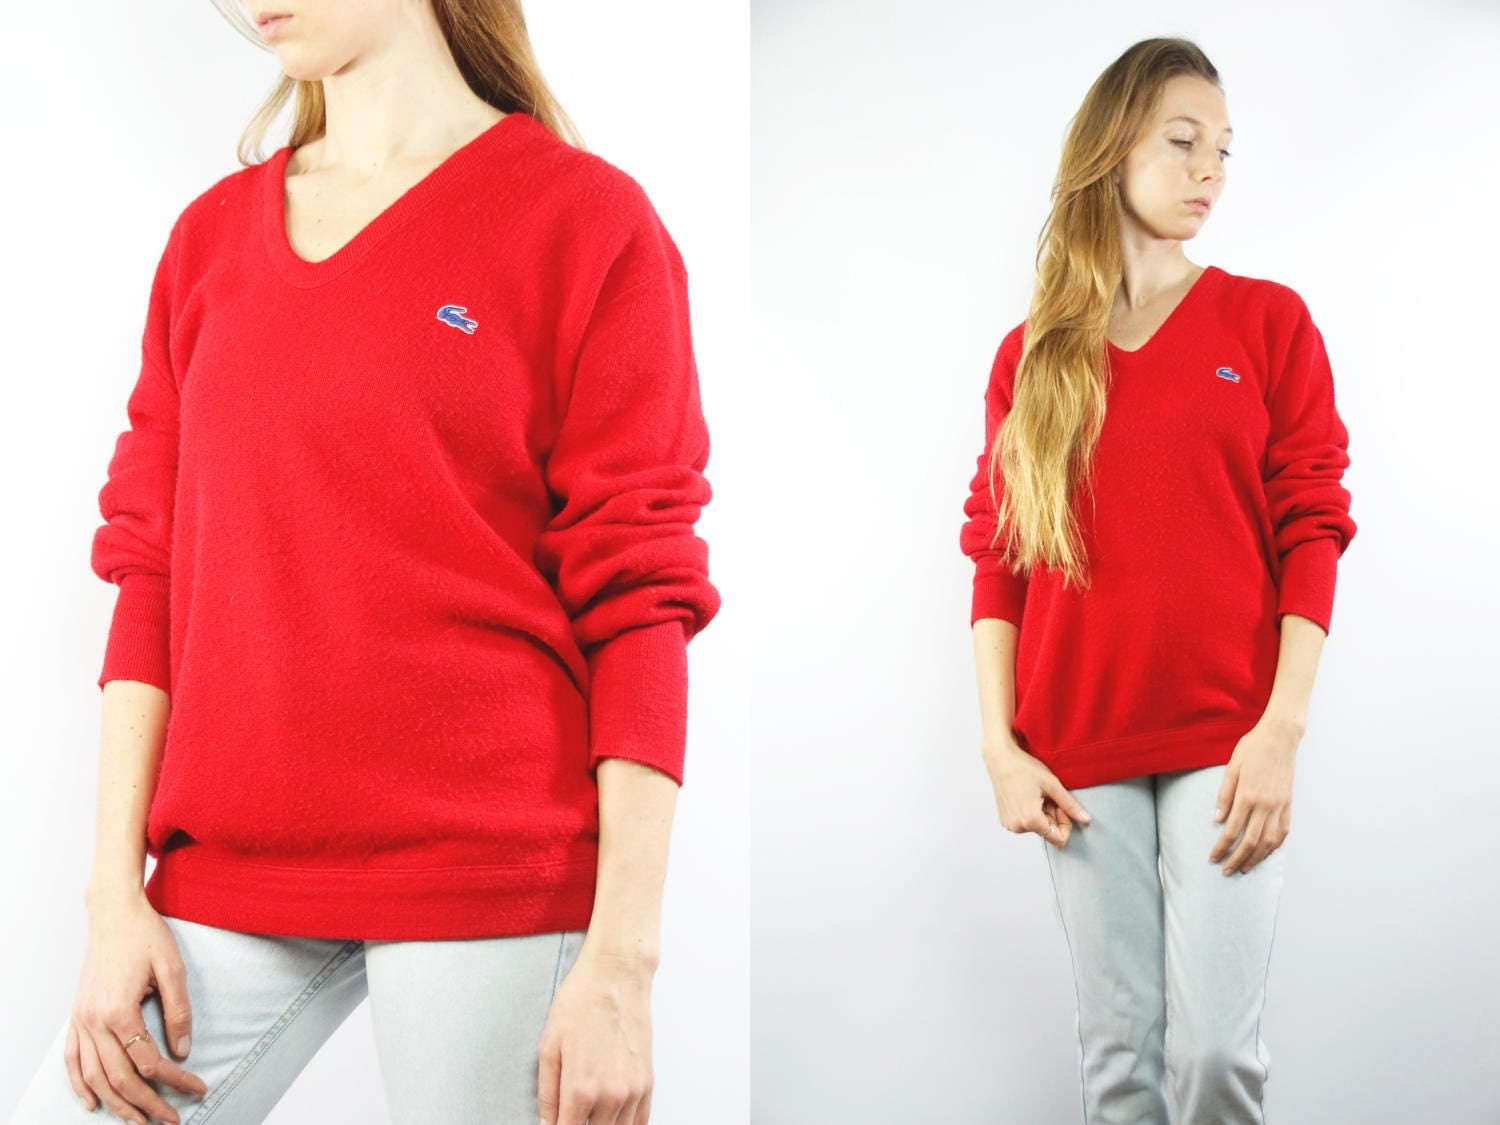 LACOSTE Izod Sweater / Vintage Lacoste Jumper / Red Lacoste